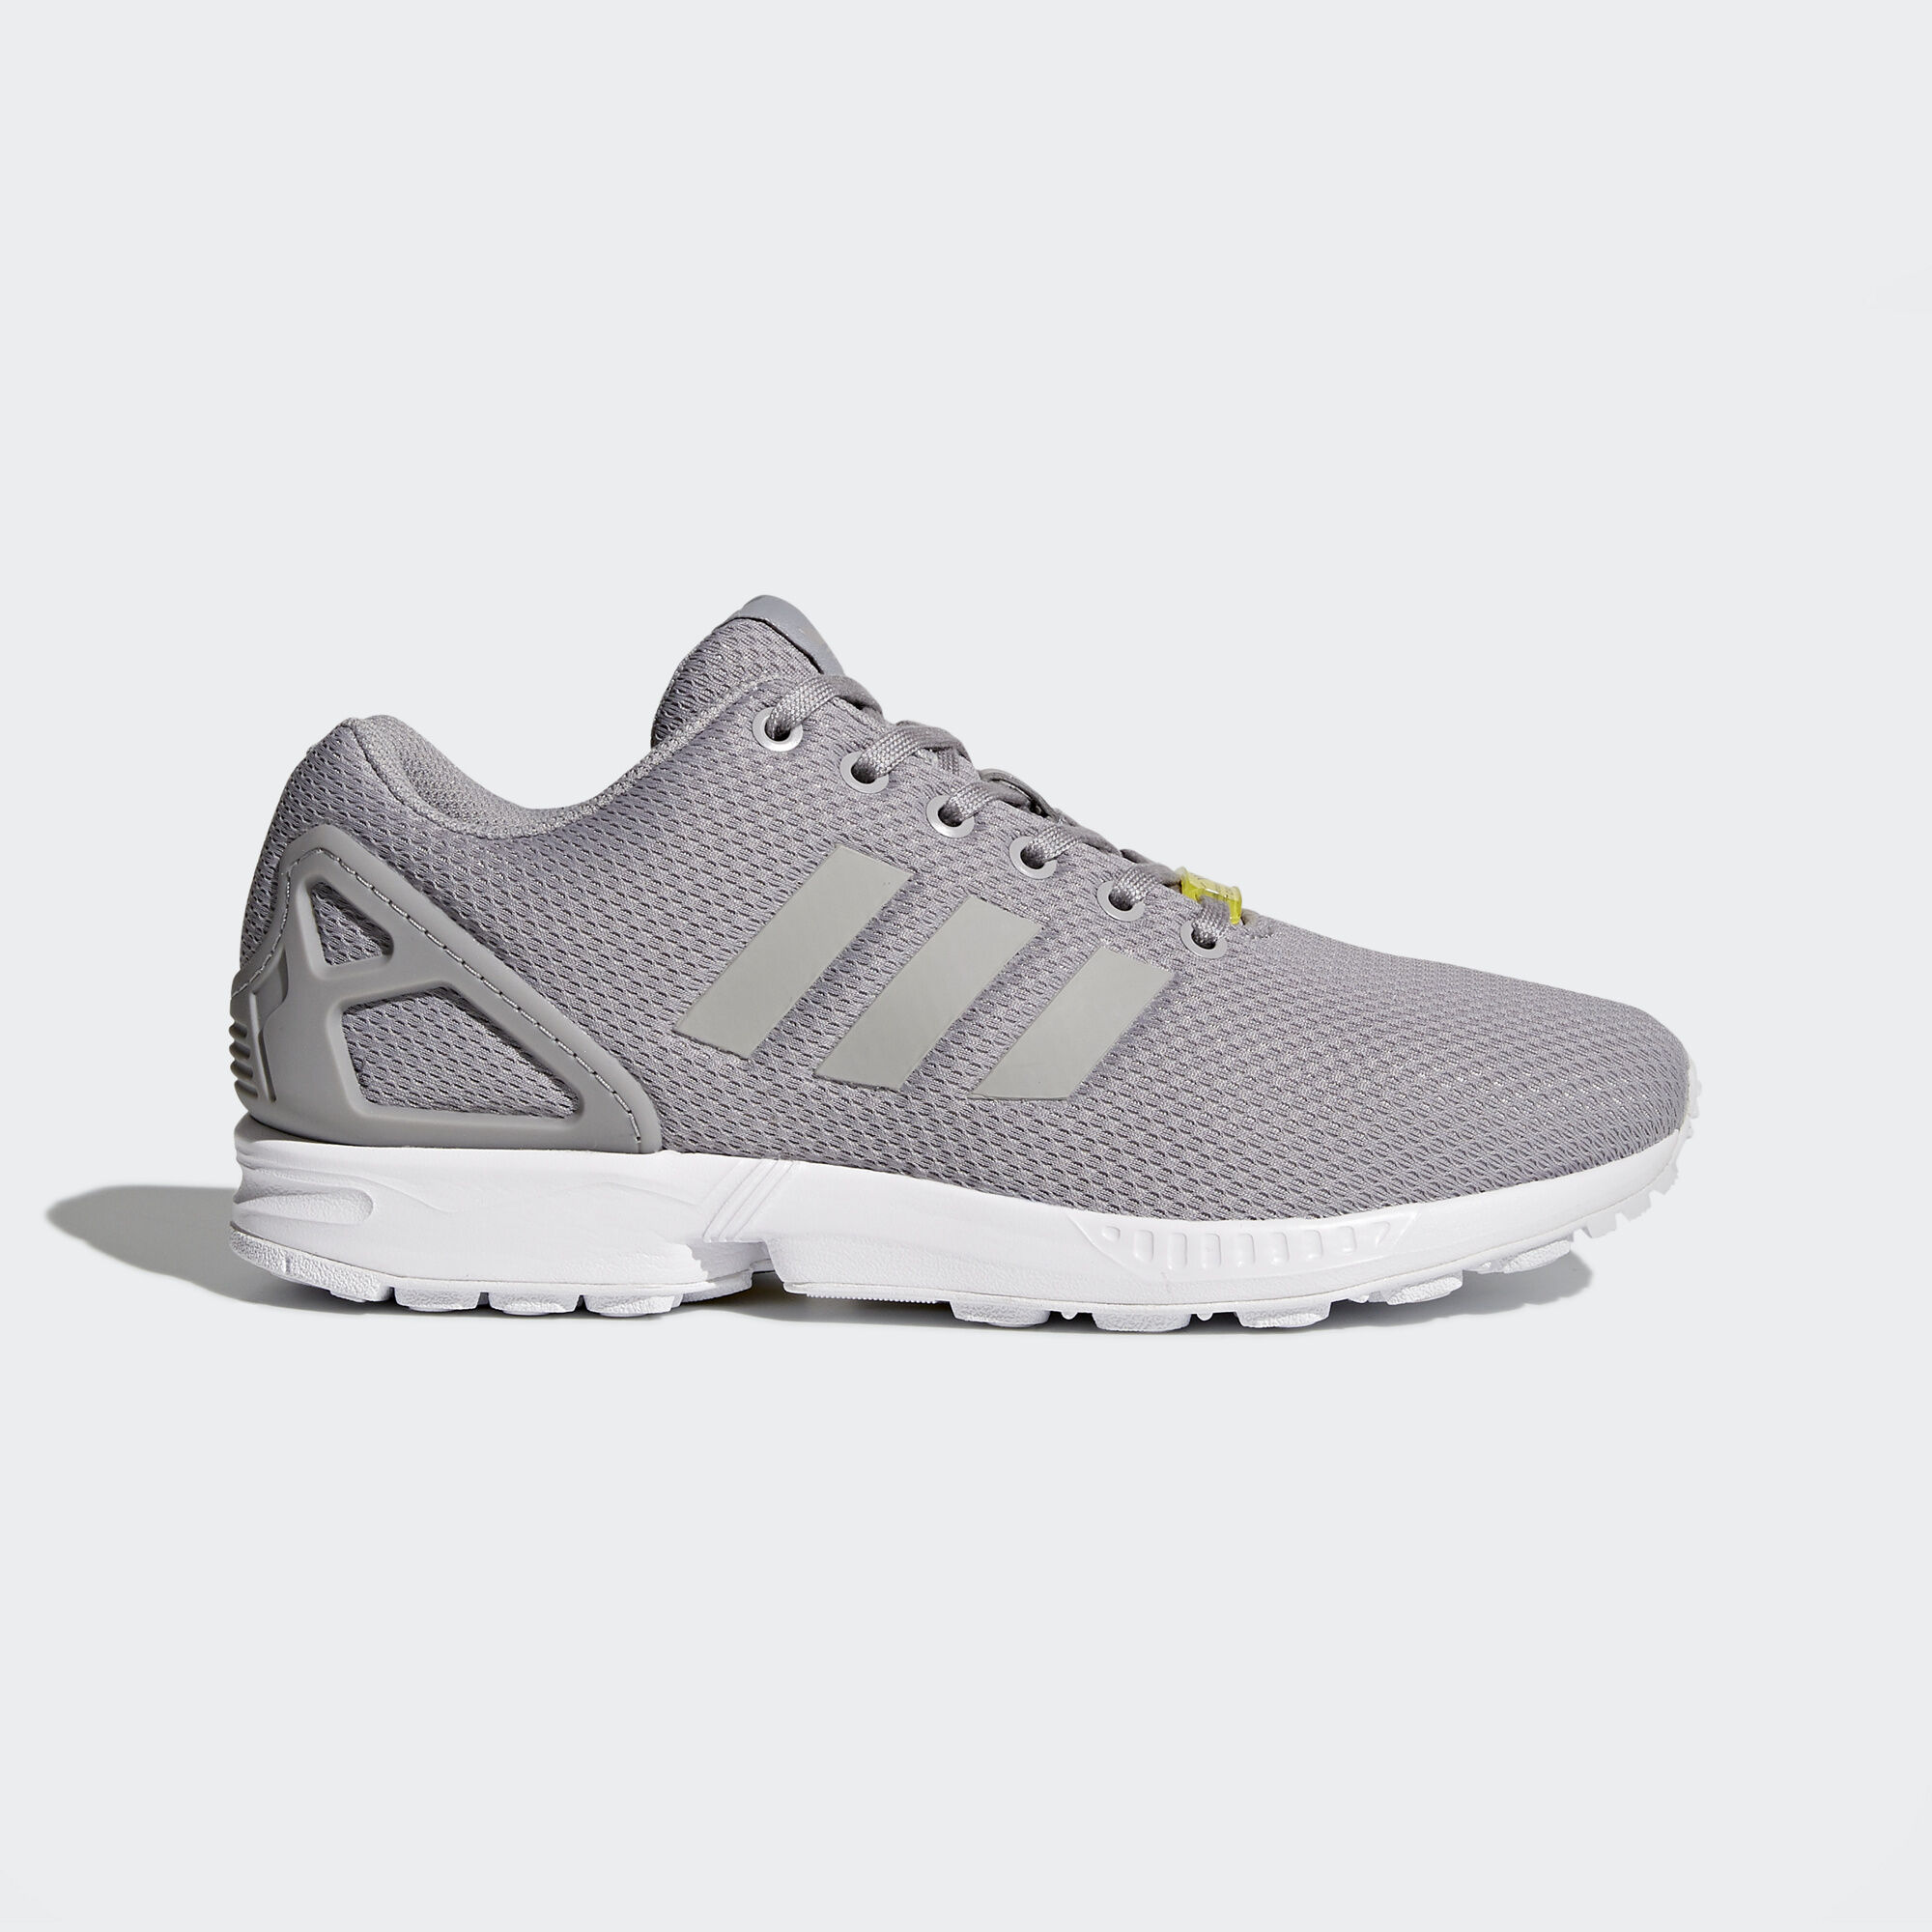 Adidas Zx Flux Black Grey